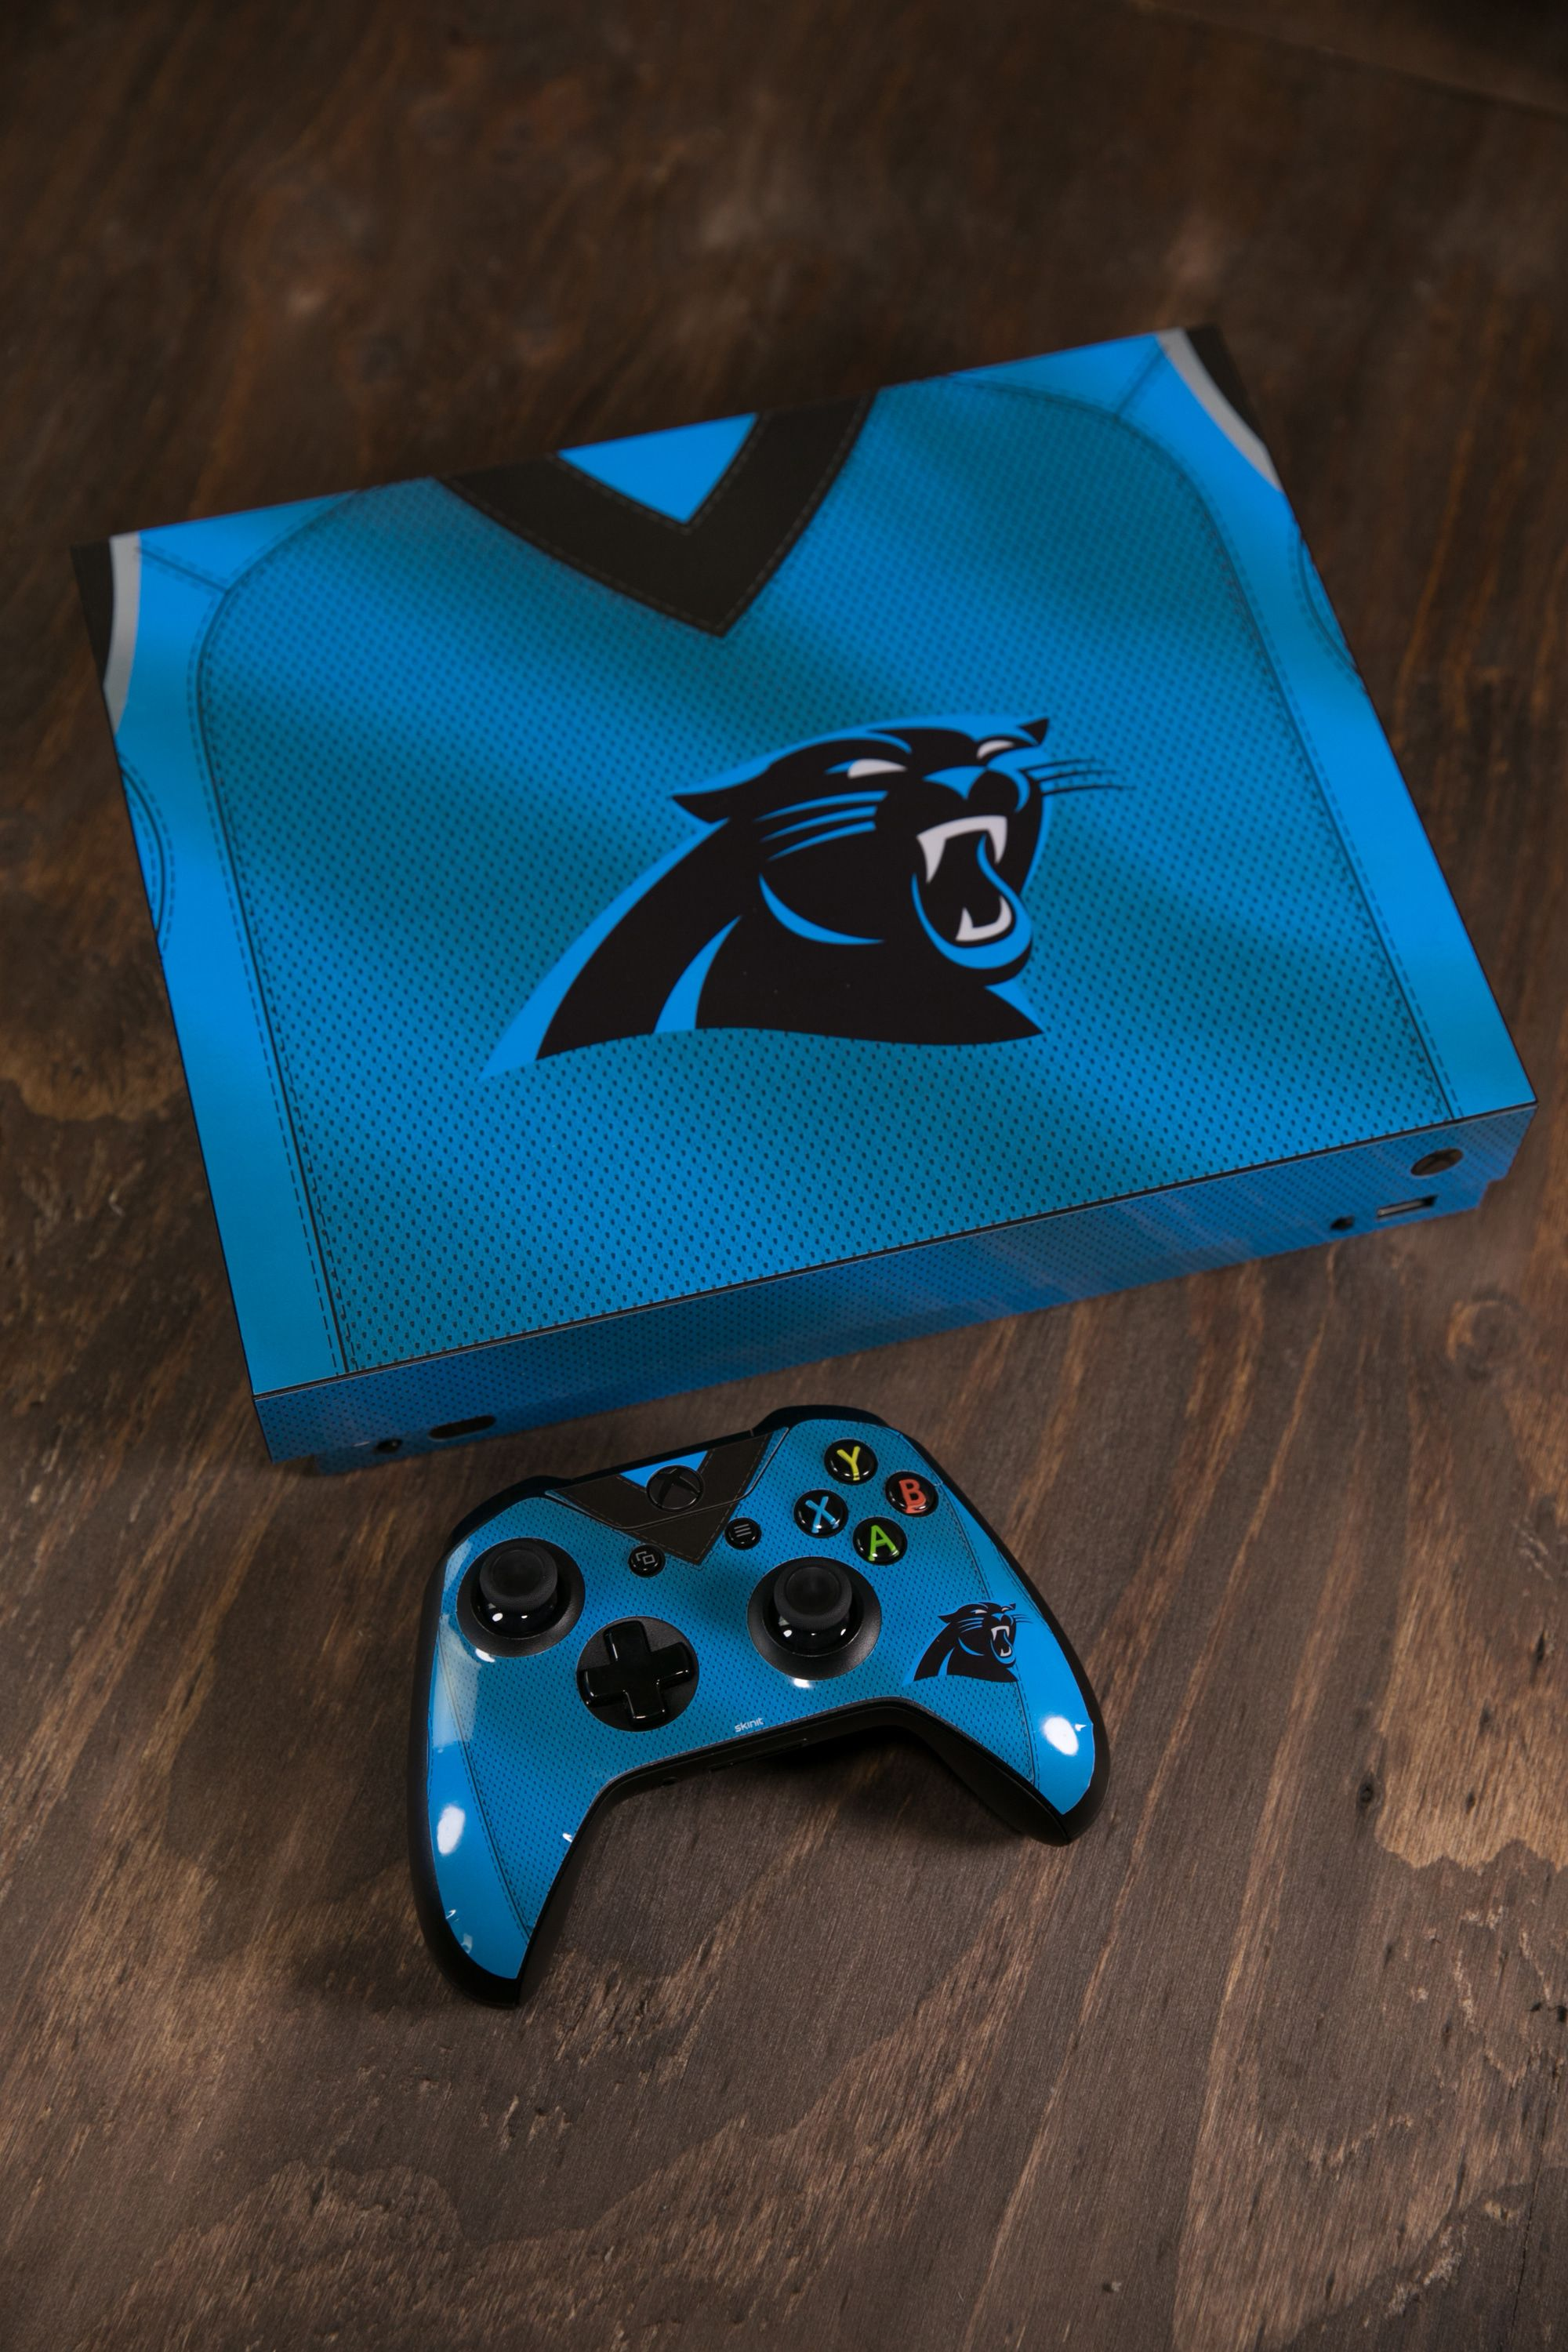 Nfl Jersey Collection Panthers Xbox One X Skins By Skinit Explore Nfl Jersey Designs A Collaboration With Nfl X Skin Xbox One Panthers Nfl Carolina Panthers